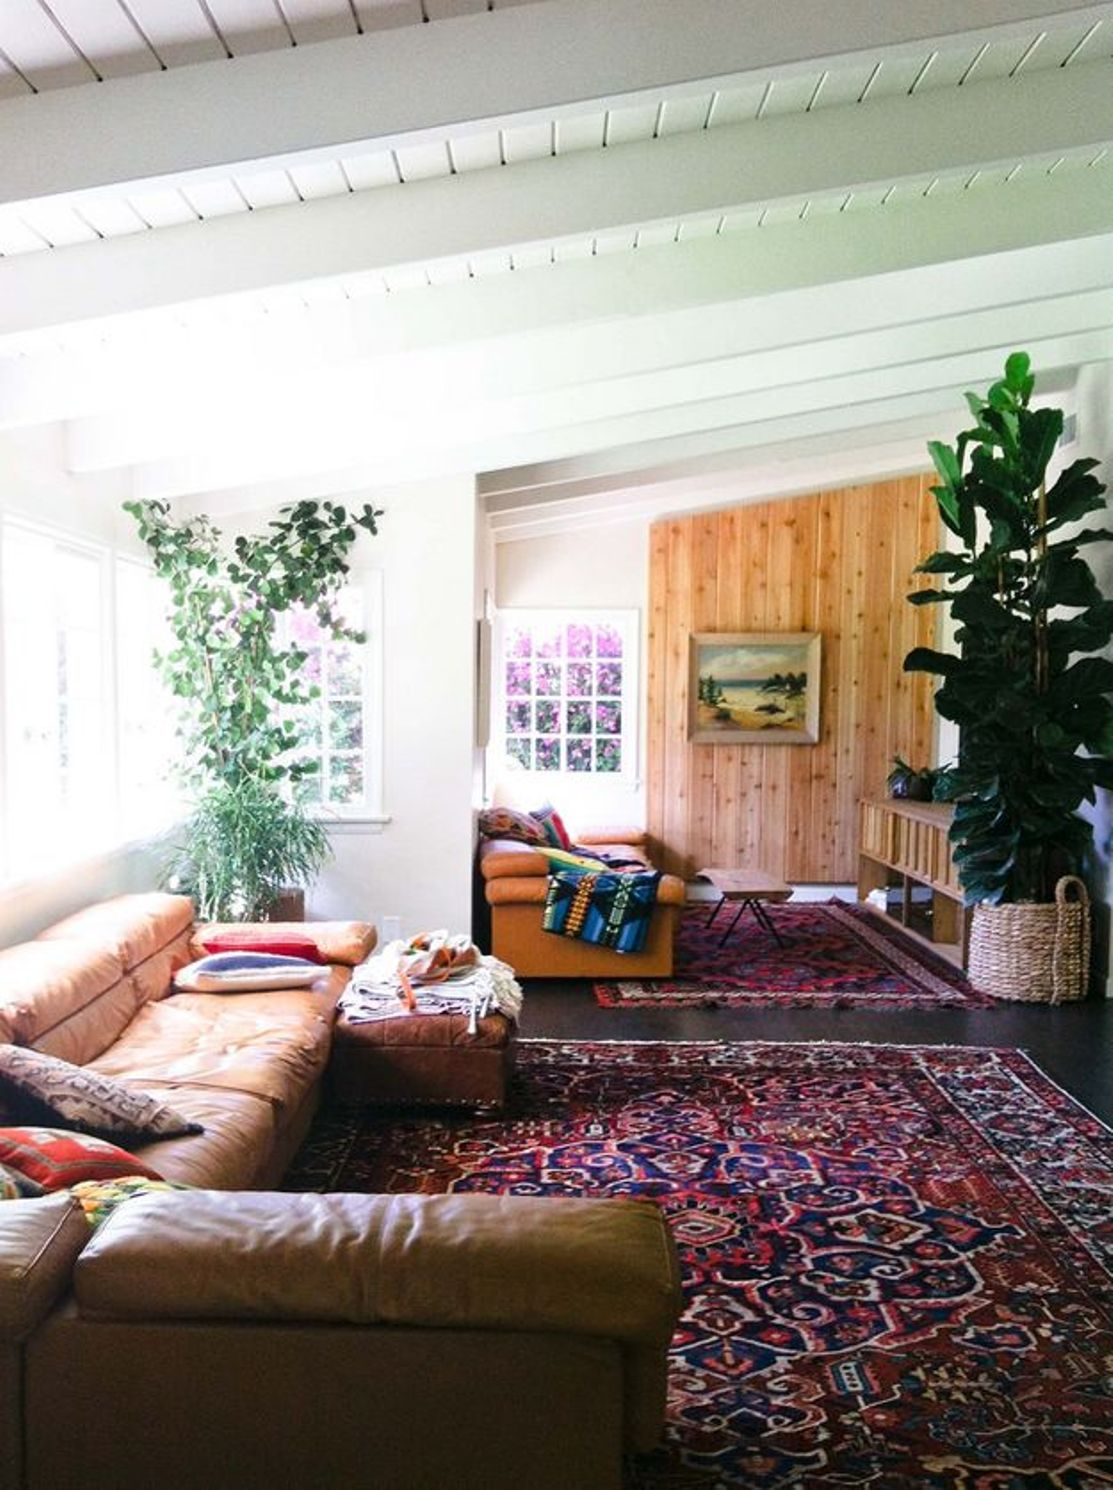 Best Bohemian Living Room Design With Bohemian Carpet And 400 x 300